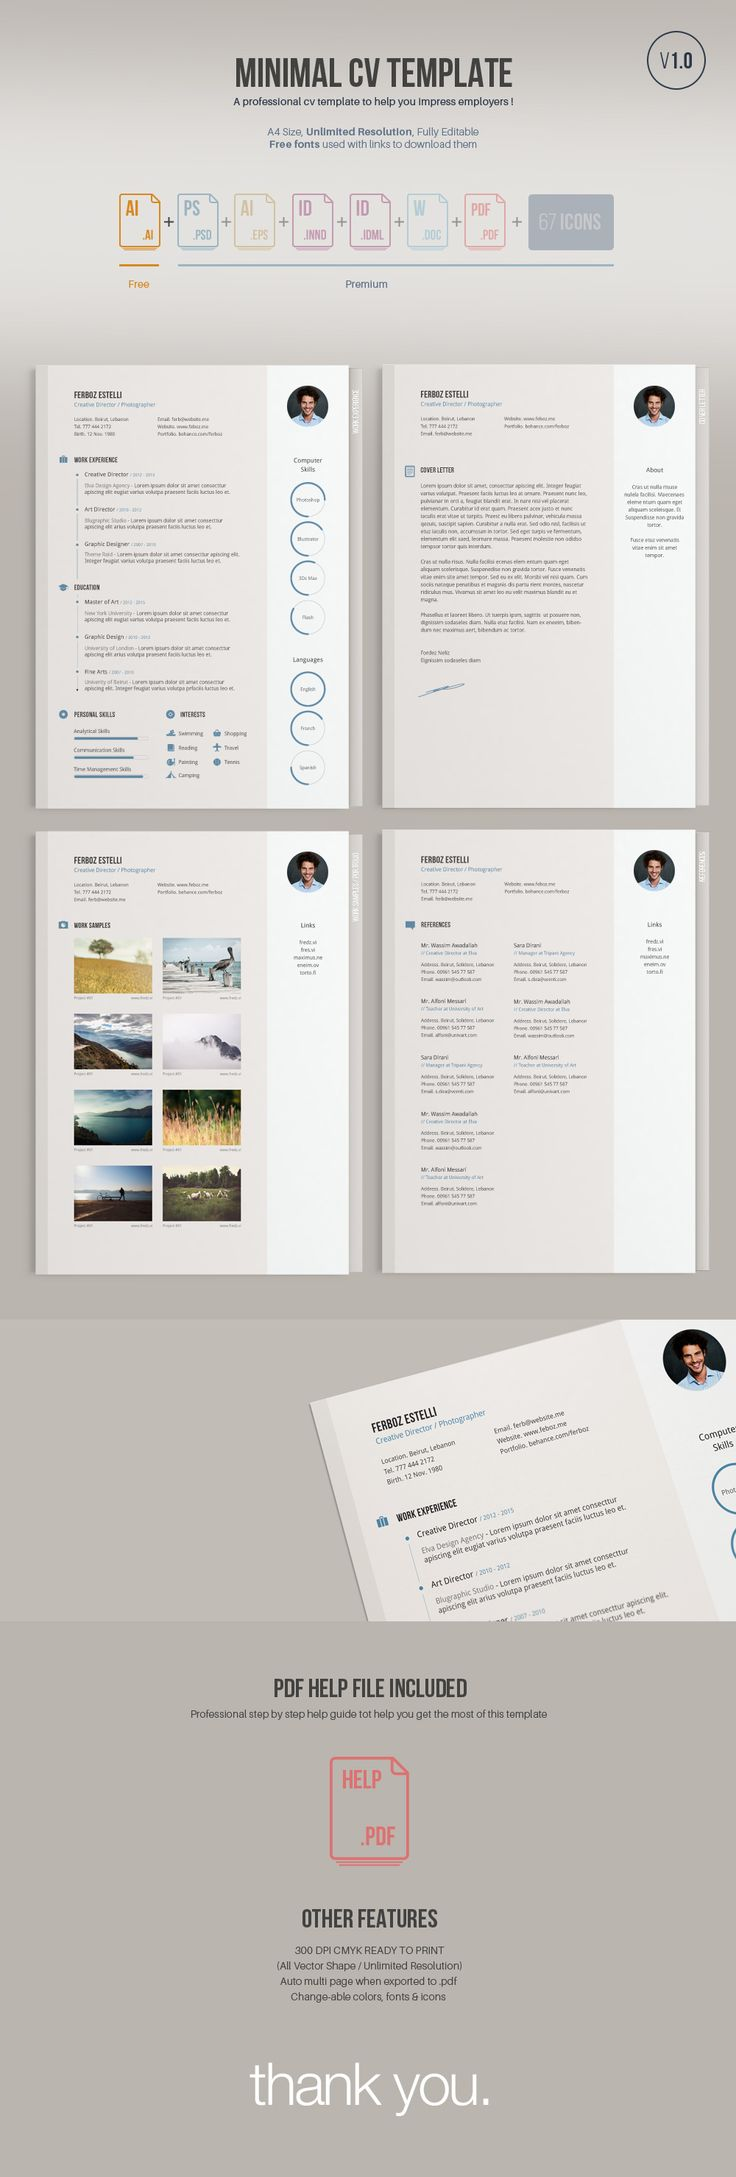 best ideas about resume templates a minimal easy to edit resume template version comes in illustrator vector ai